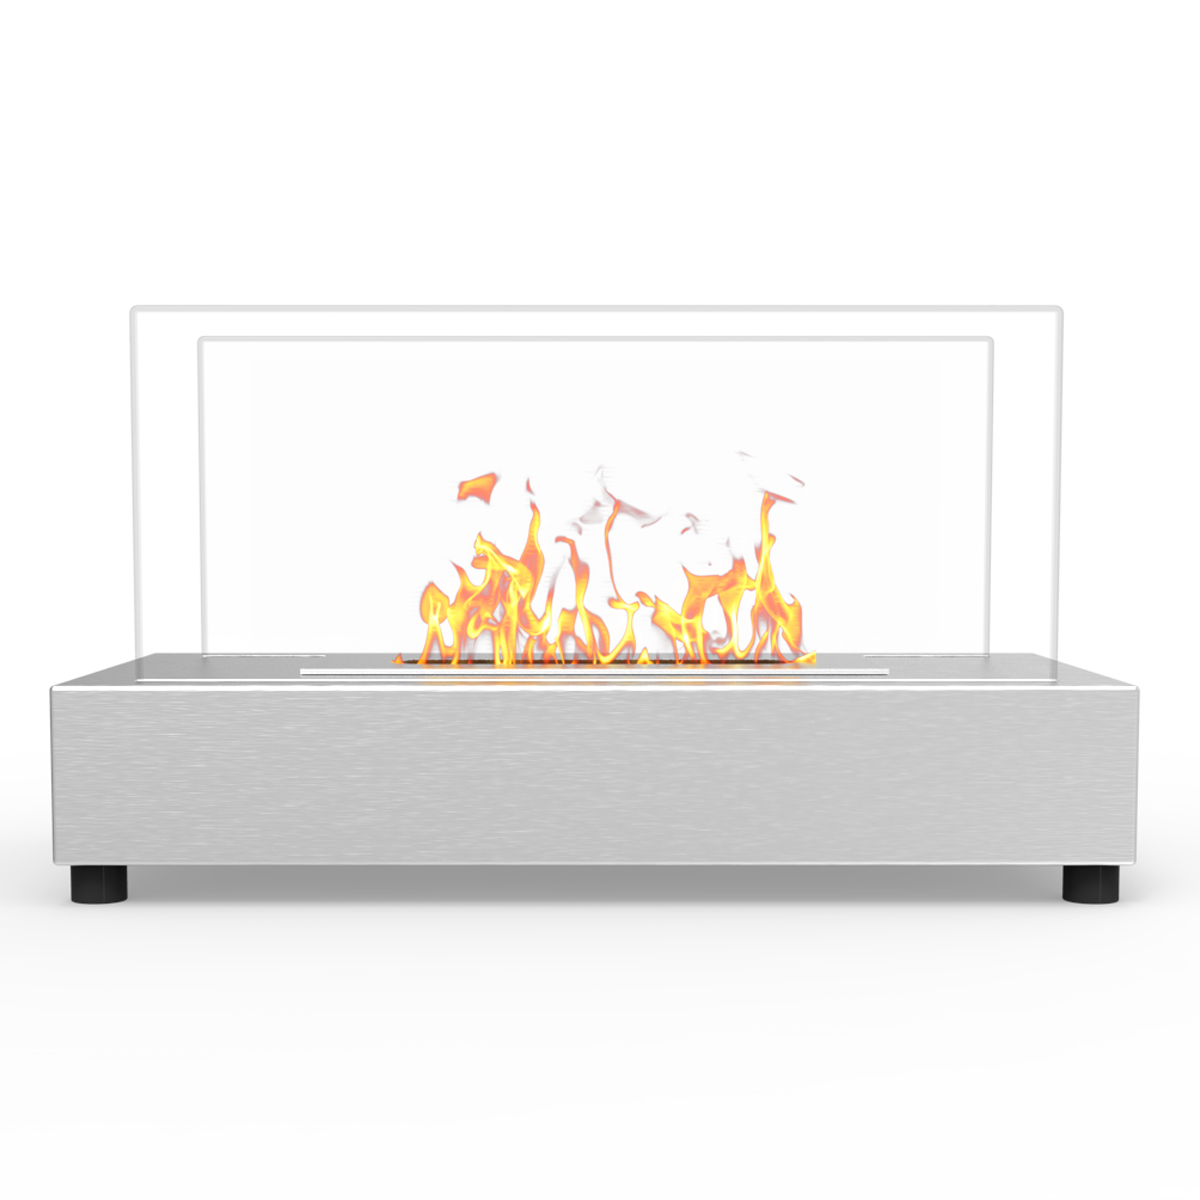 avon tabletop portable bio ethanol fireplace in stainless steel